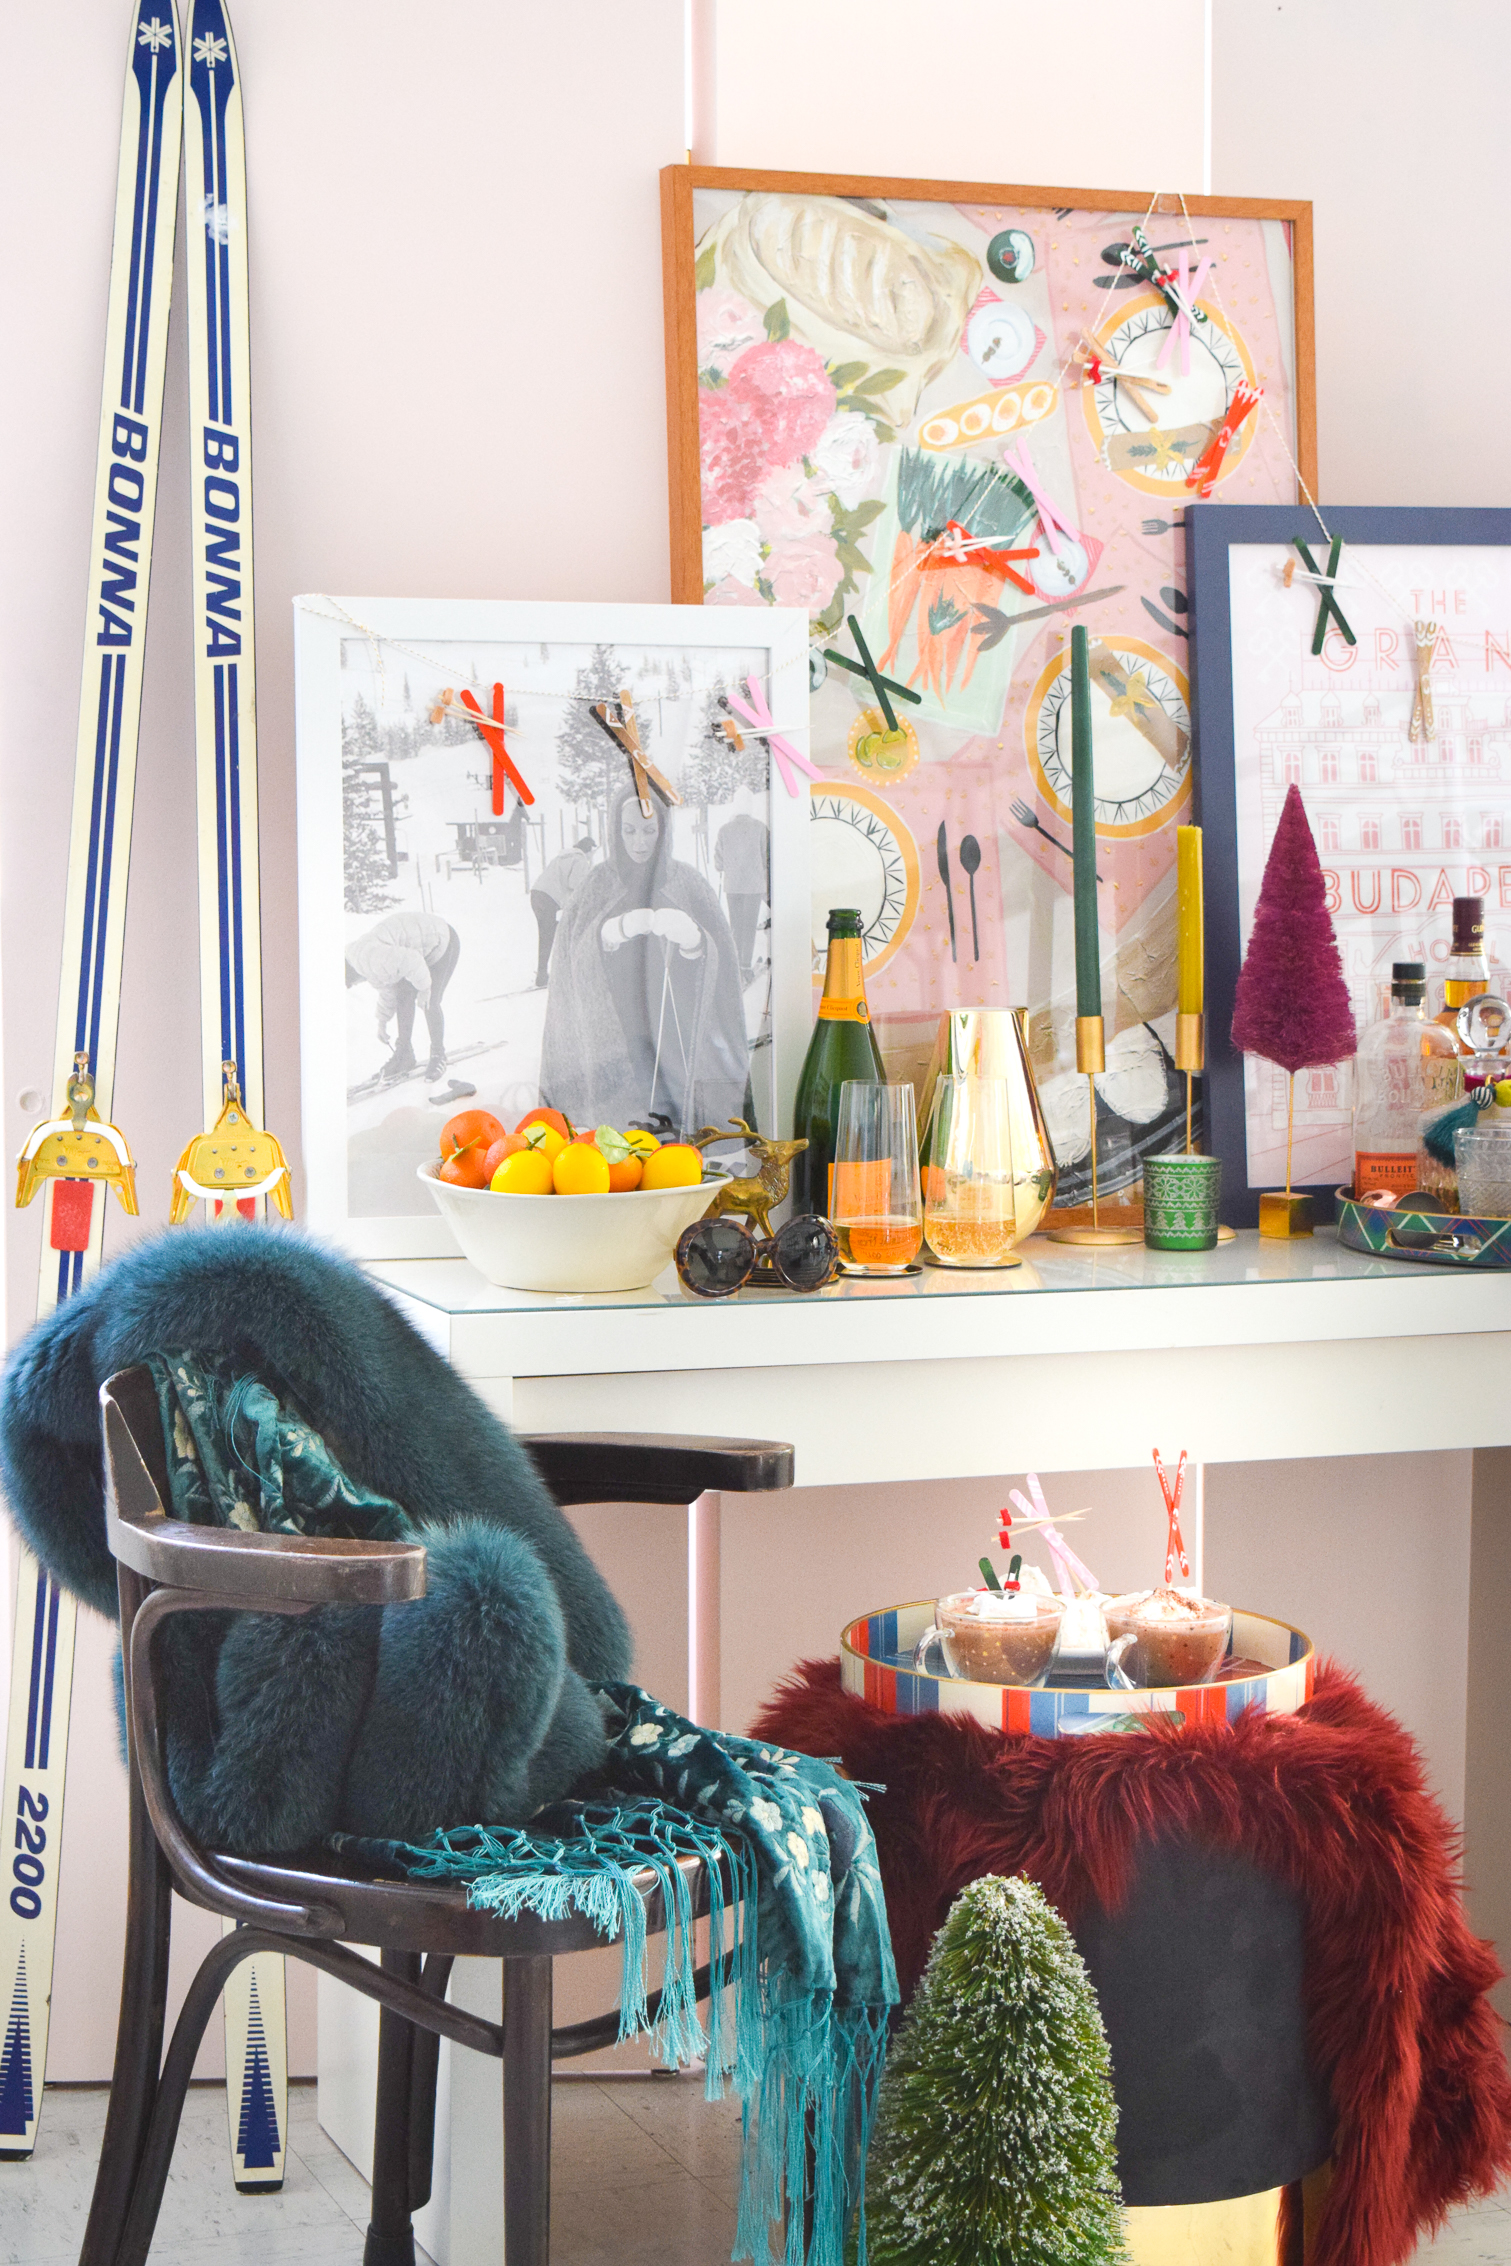 What do you do in the middle of winter? Probably lots of outdoor sports and activities right? I am the chalet and après ski kinda girl. Can you picture me lounging in a beautiful lodge near the fire surrounded by furs and cognacs? Good, me too. With all this cold weather I've had the itch to put together a bar scene worthy of my glam après ski bar dreams, and you're all invited.